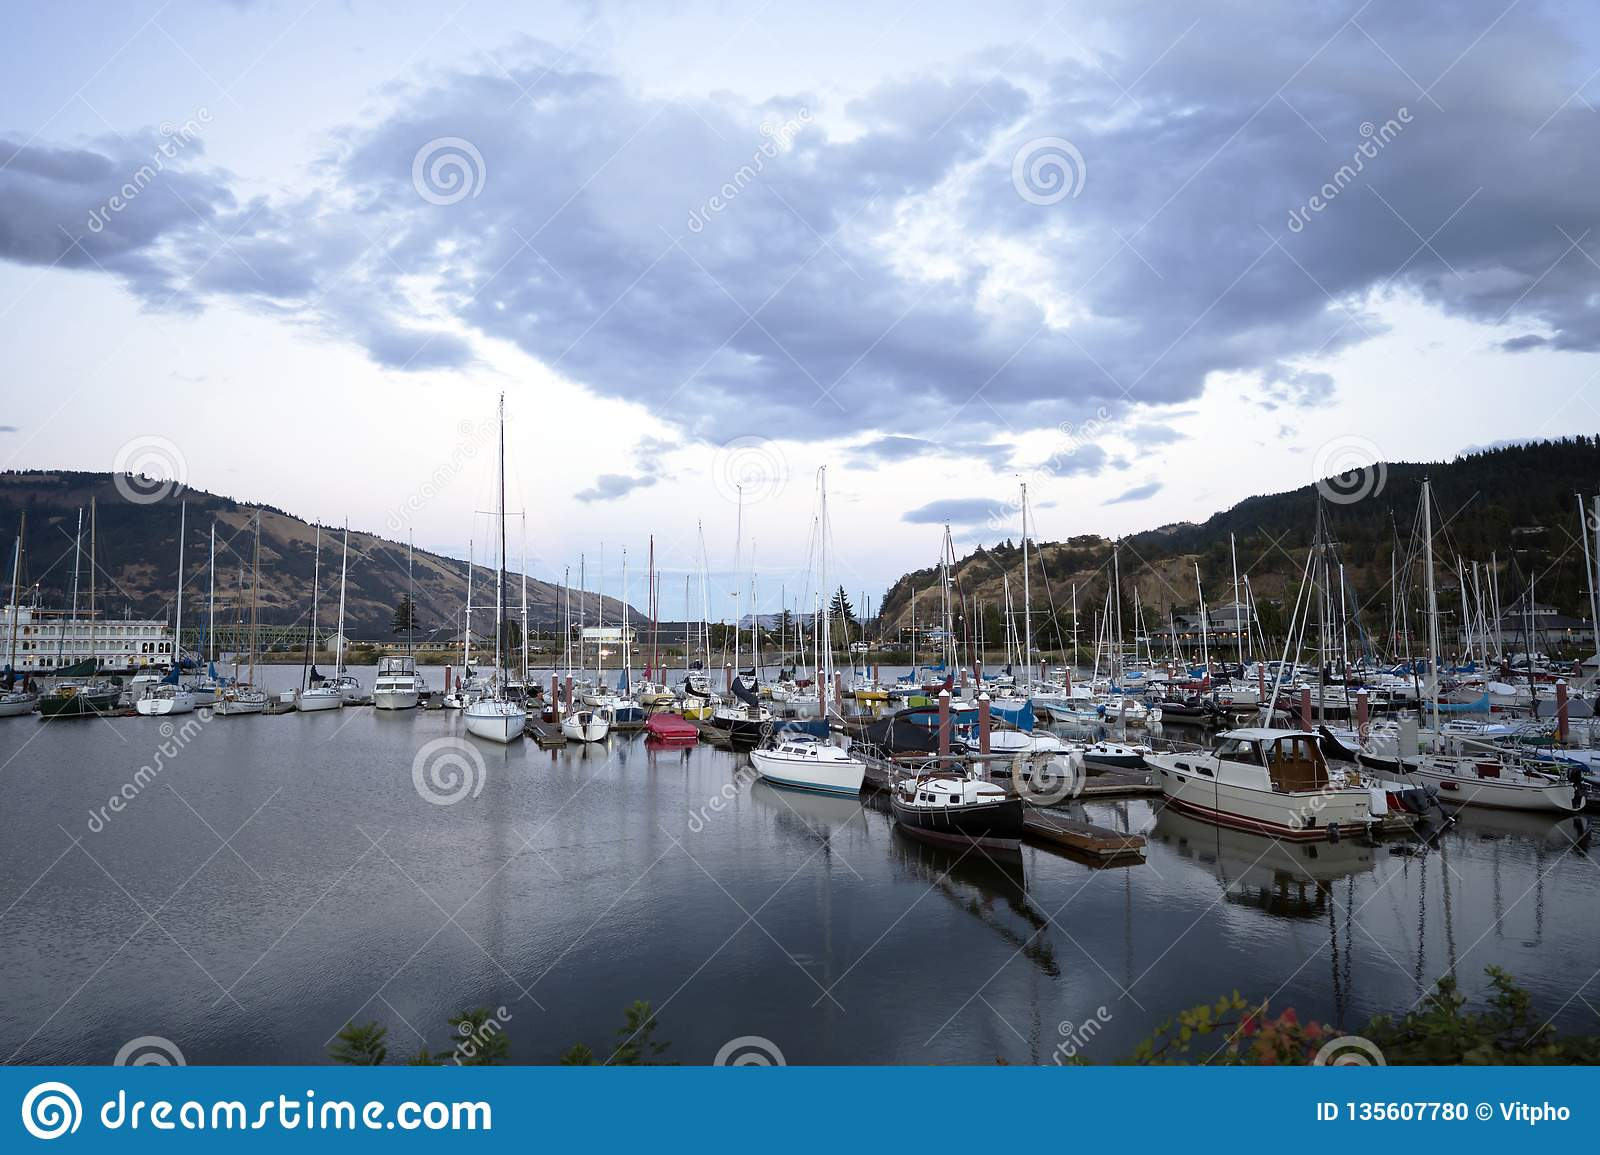 Yachts And Boats Moored At The Piers In The Bay Of The